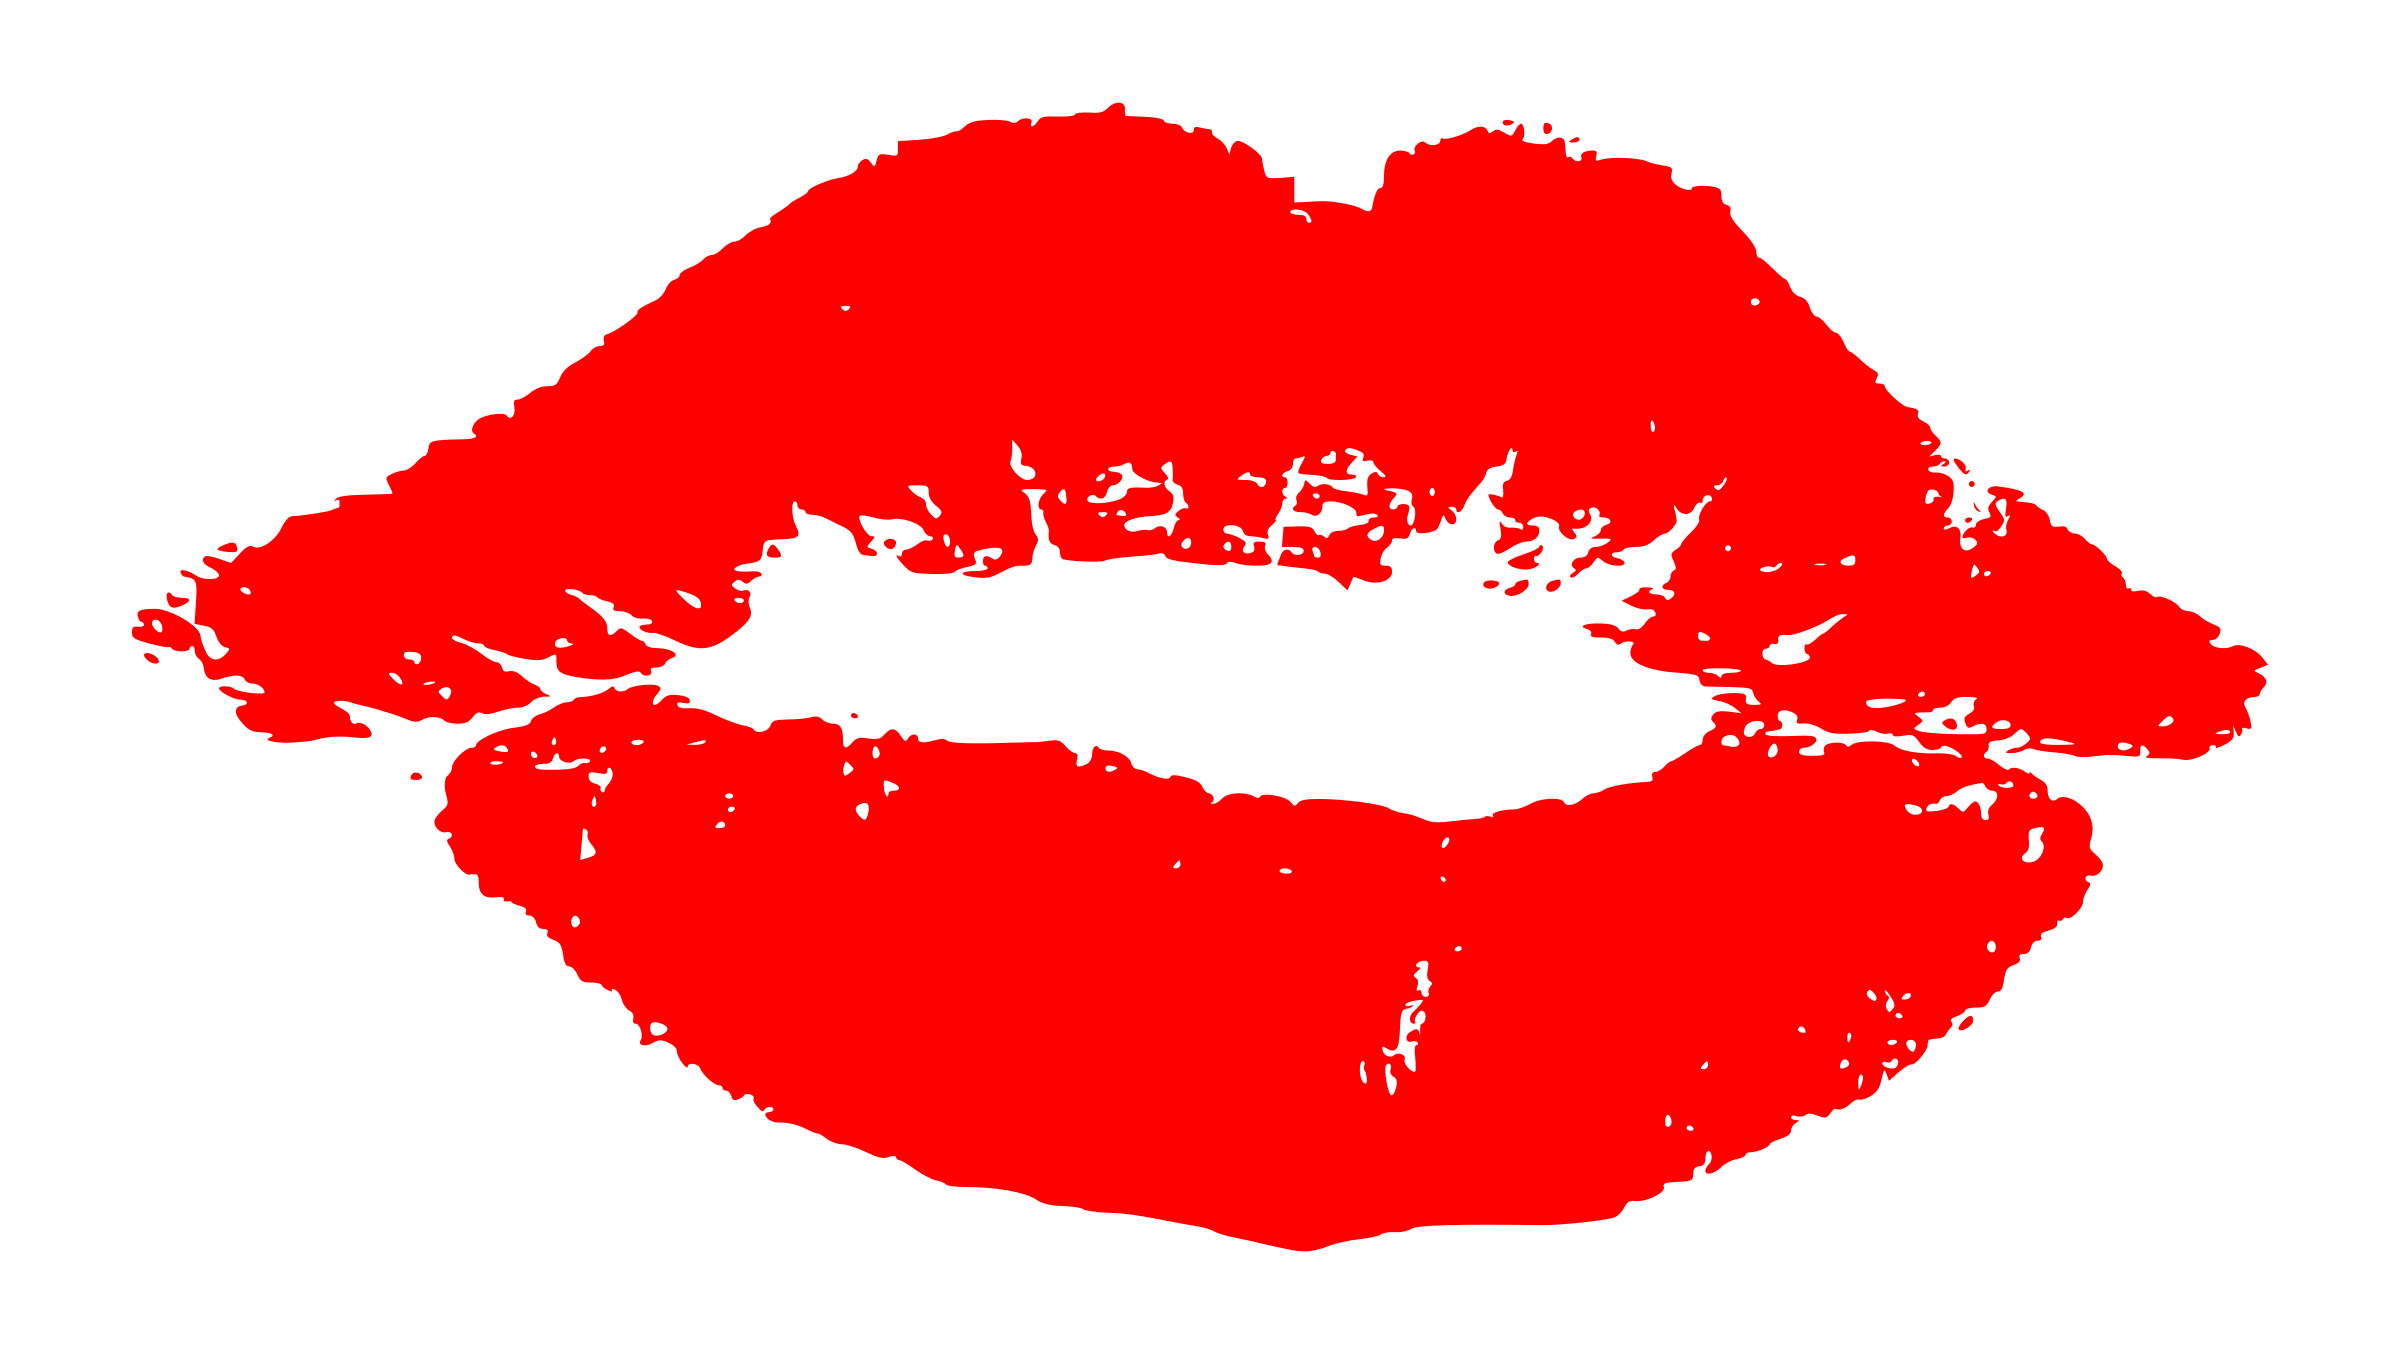 Lip clipart big red, Lip big red Transparent FREE for download on.